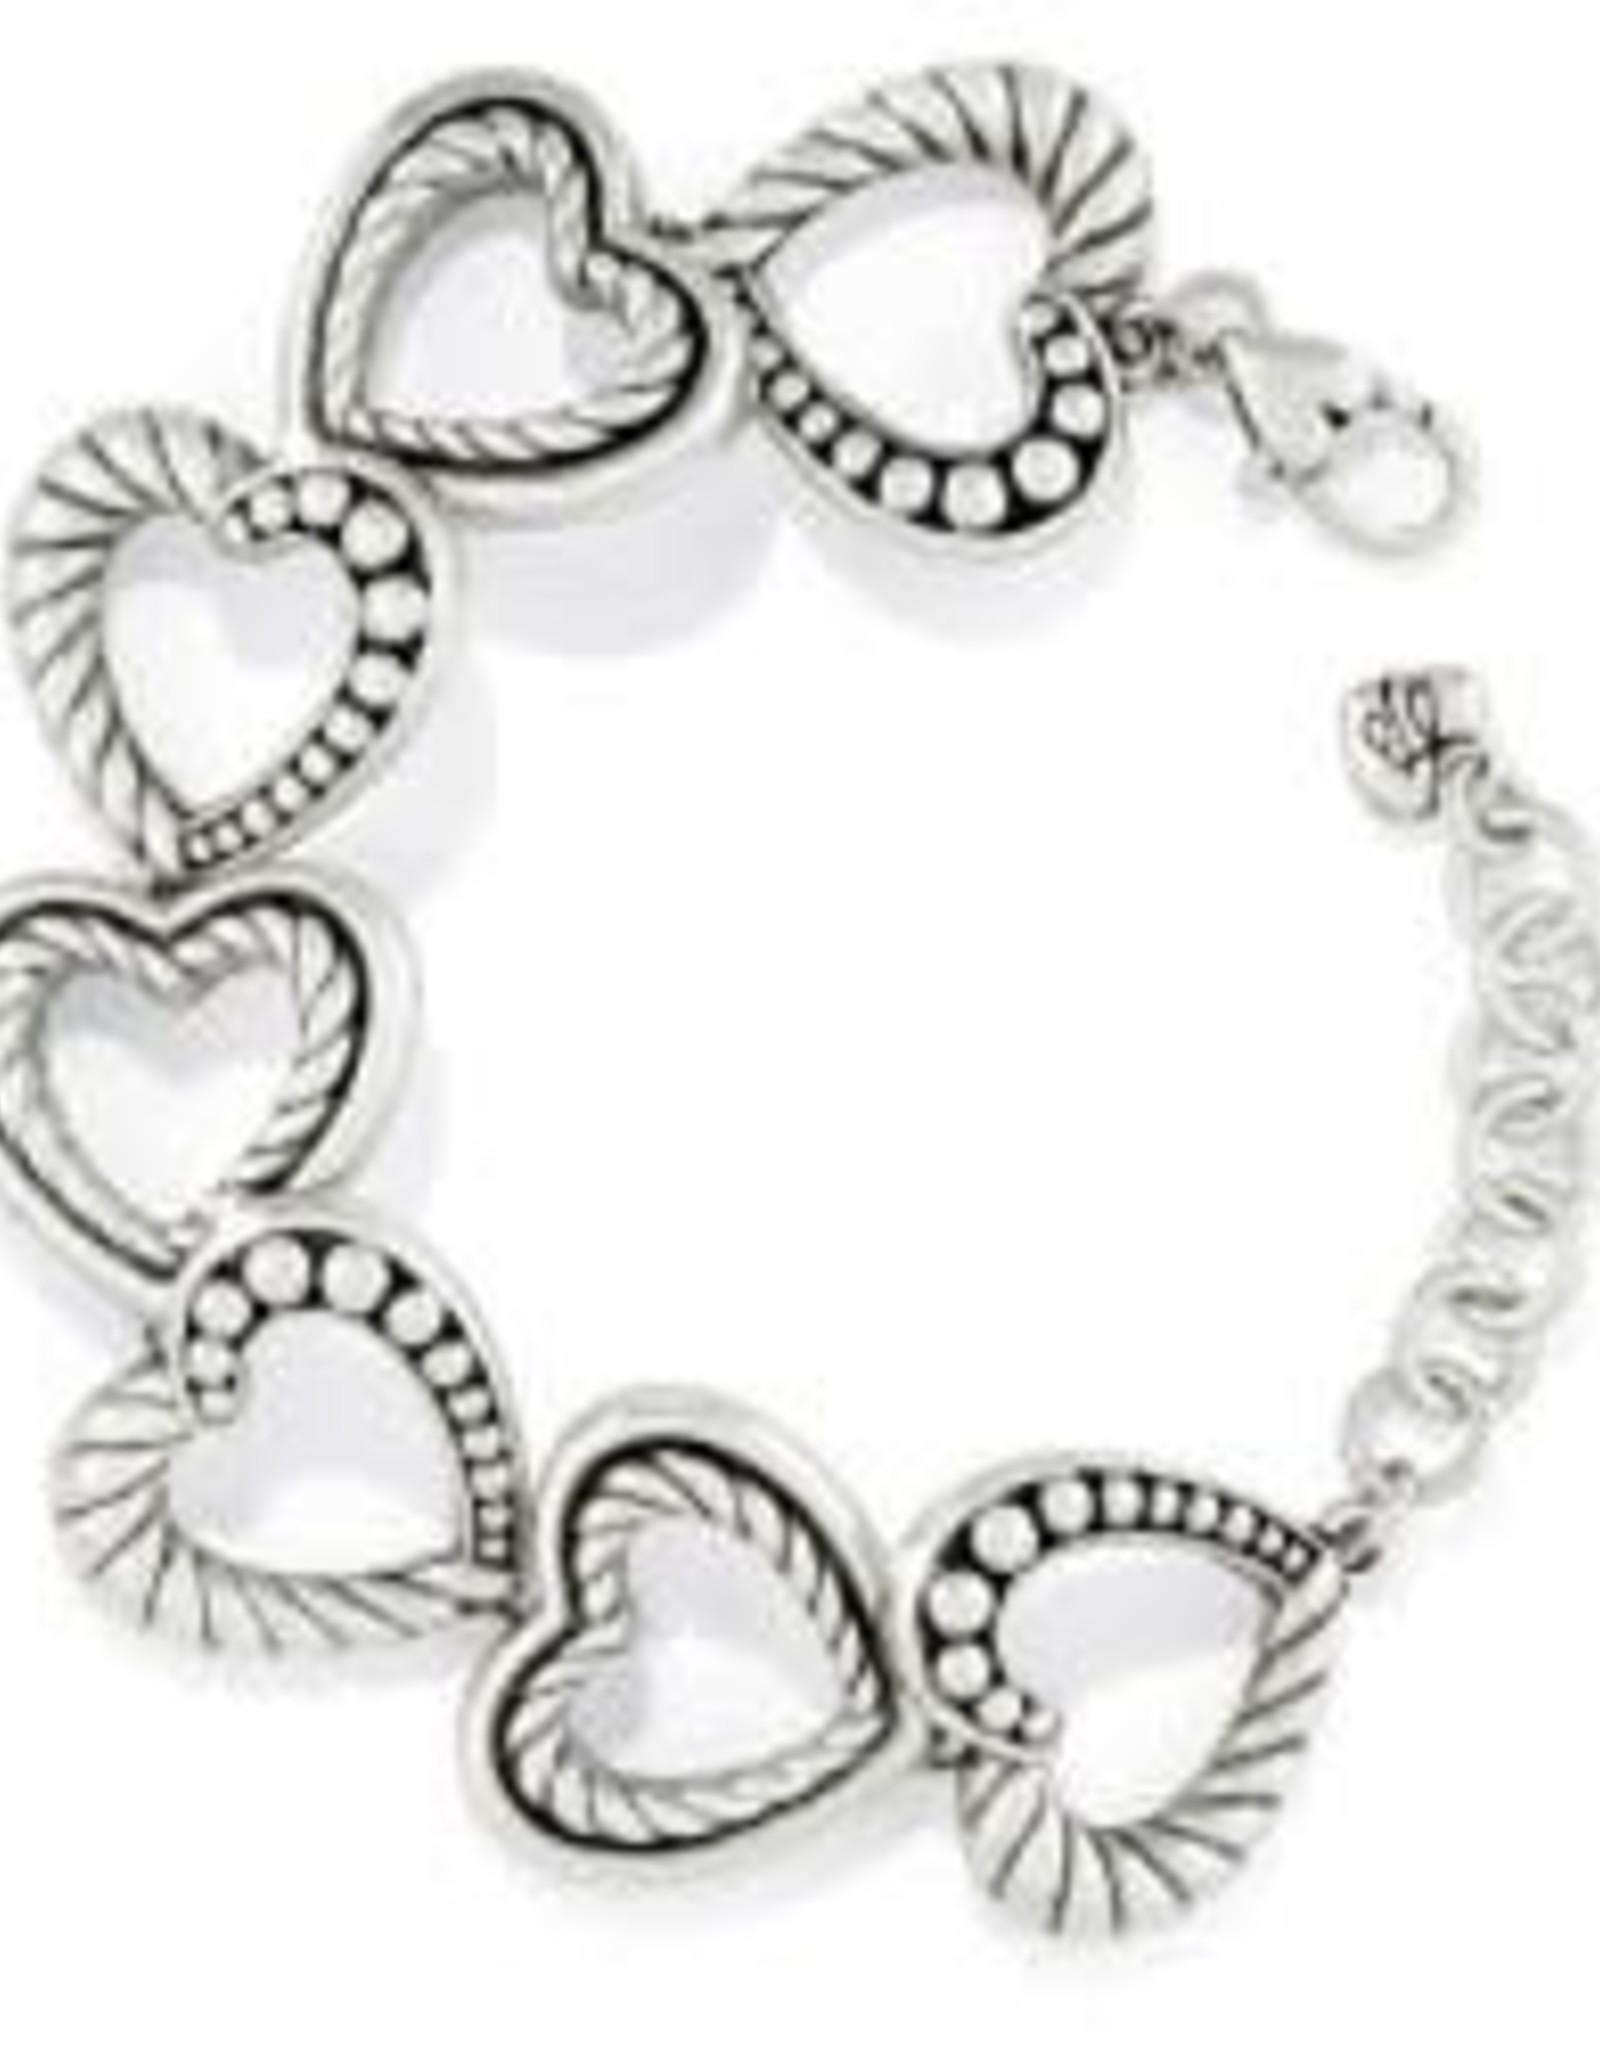 Brighton Brighton Bracelet Connected By Love  silver